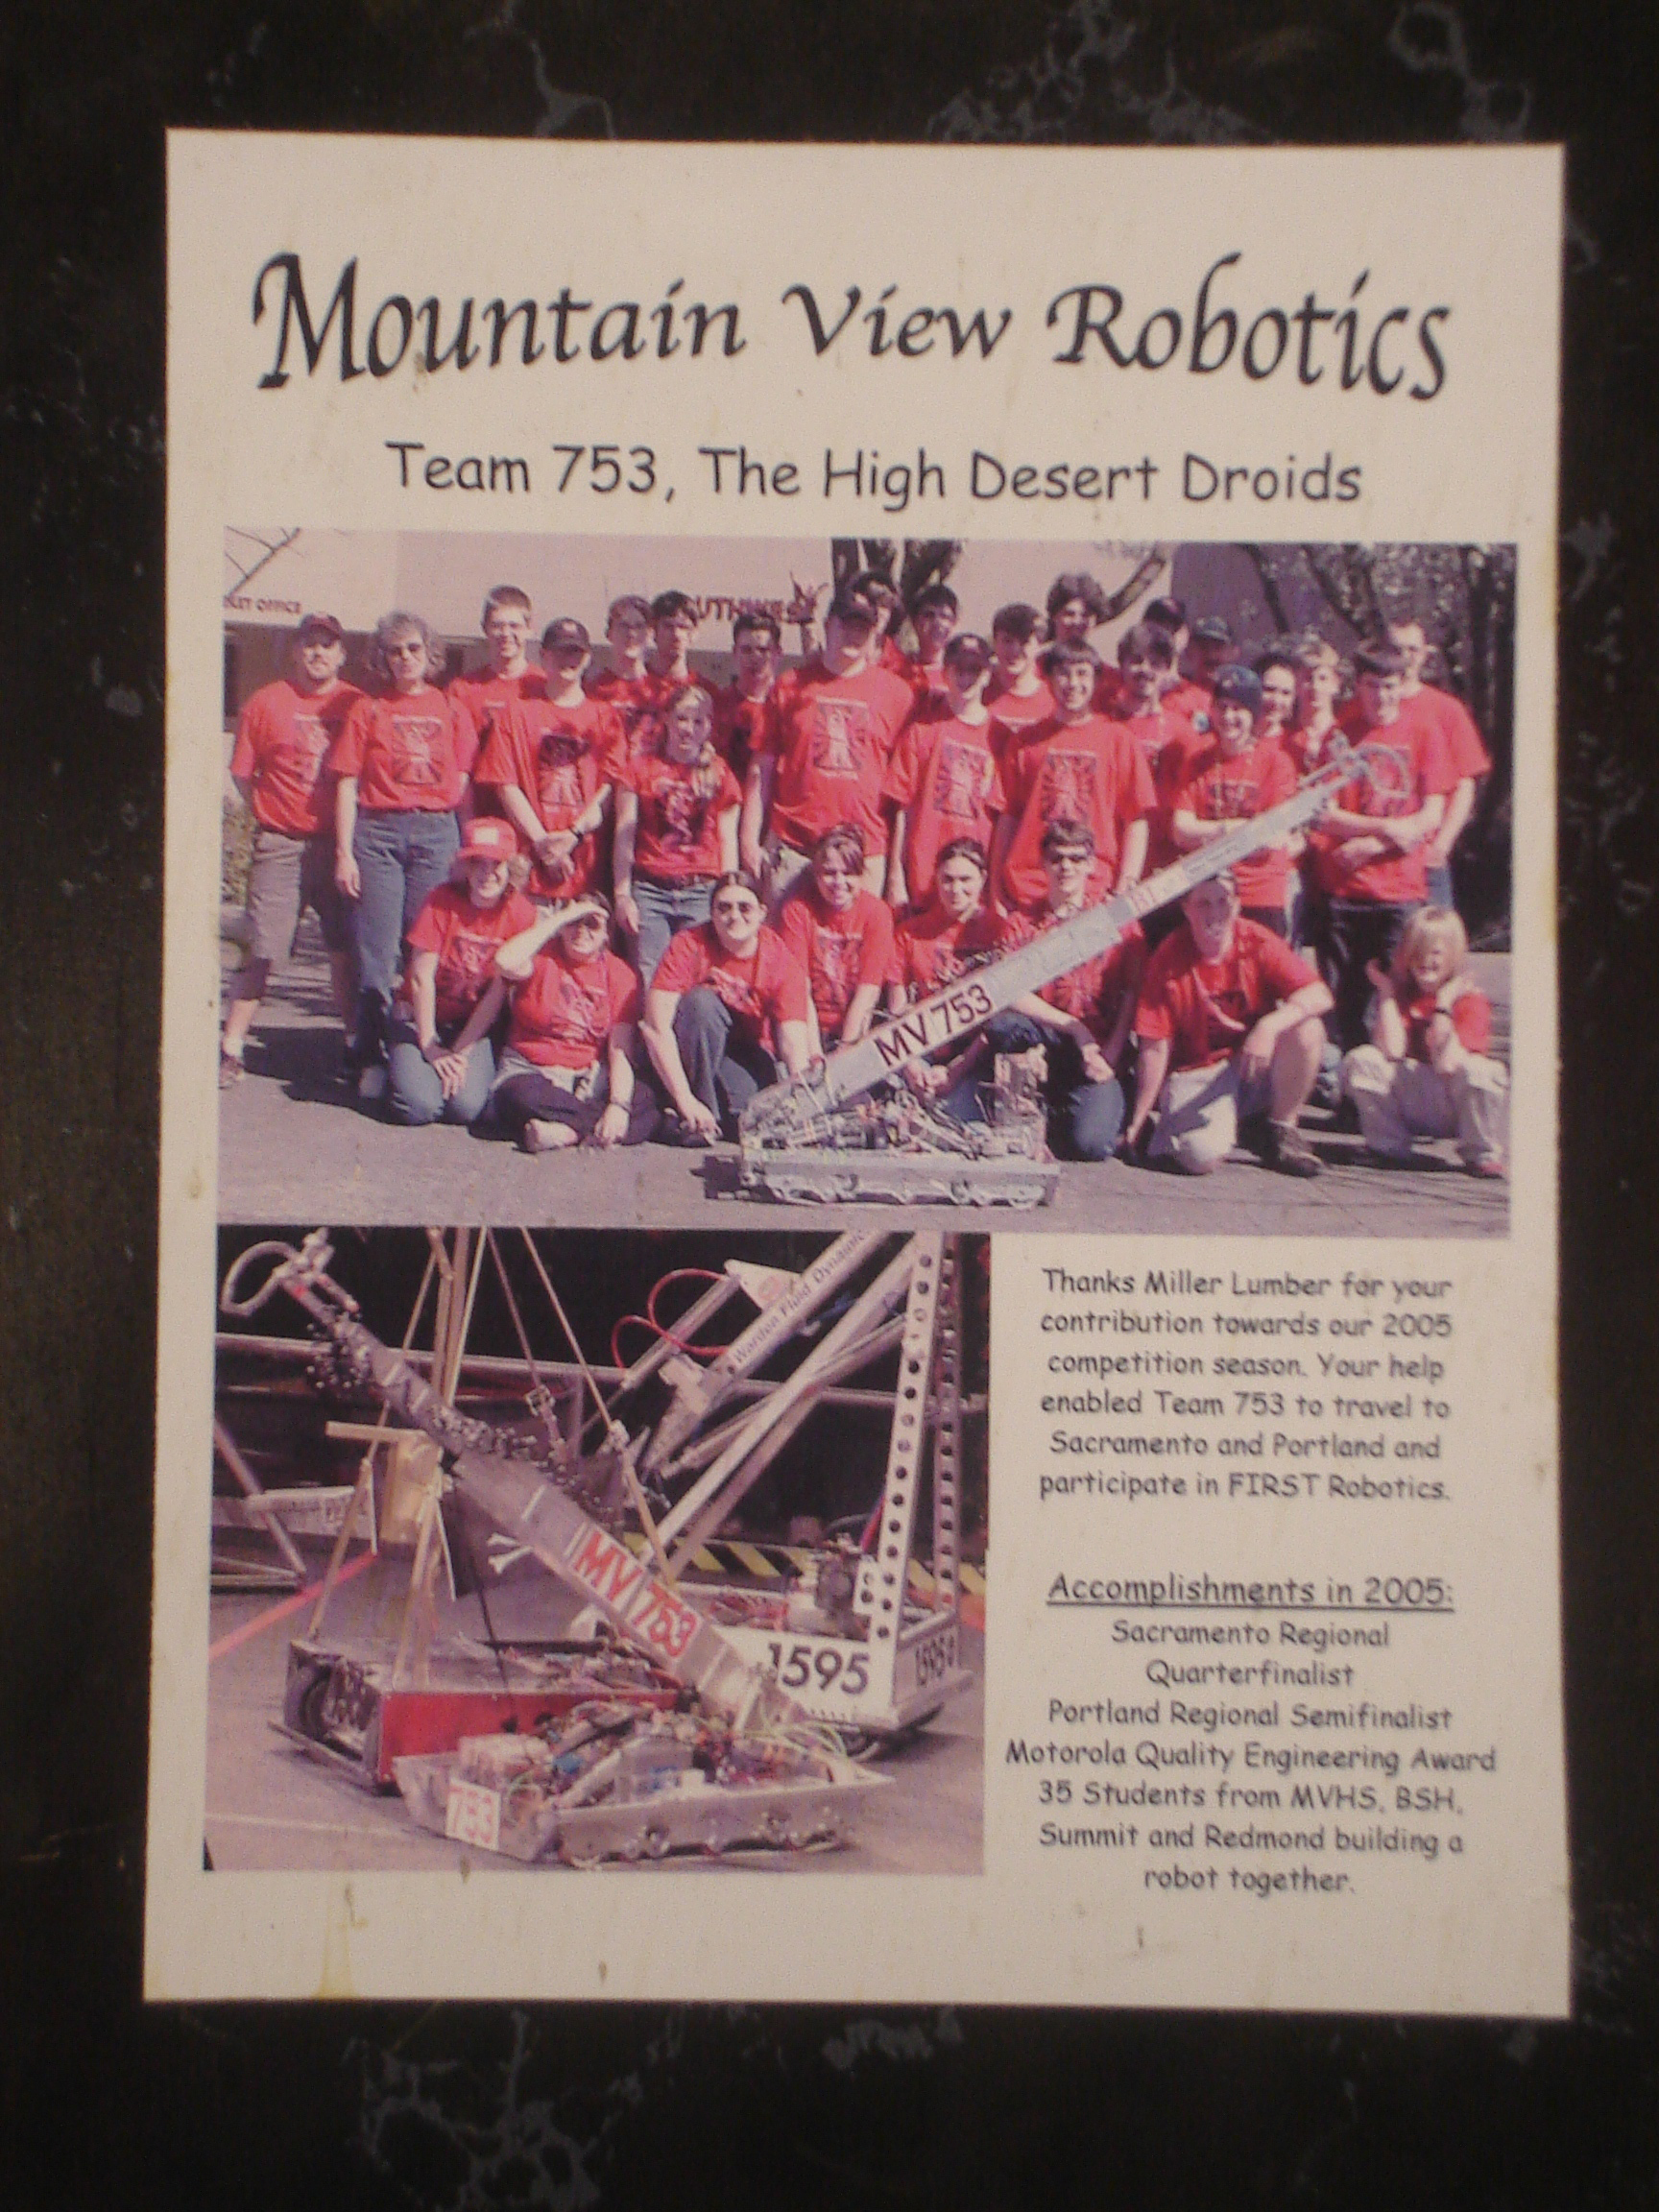 Miller Lumber supports Bend's high-school Robotics team, The High Desert Droids, as they learn about science and technology.